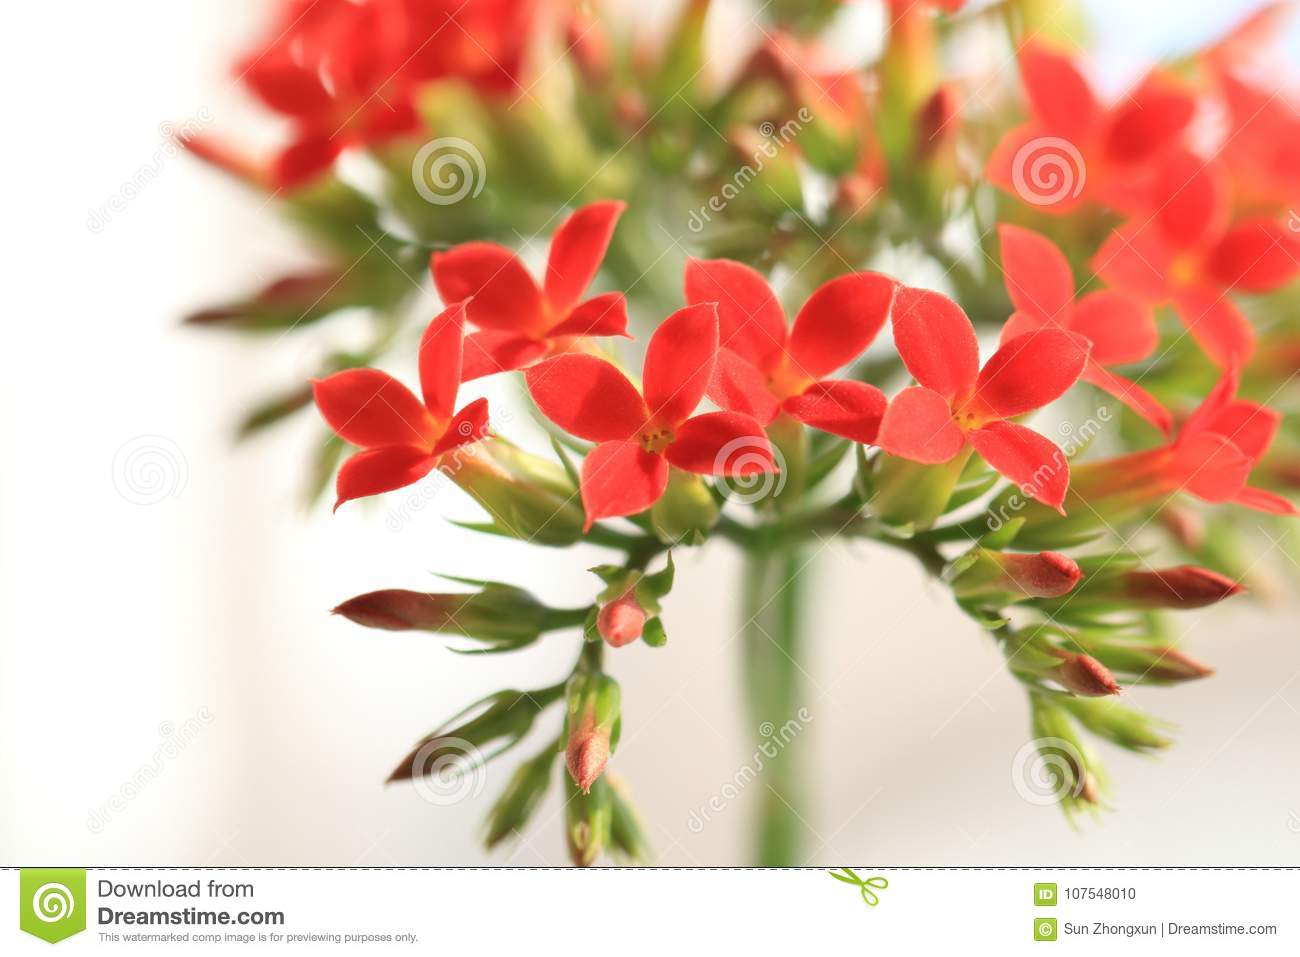 Garan dishlongevity flowers stock photo image of considered implied meaning of plant culture is considered auspicious longevity lucky flower another name for longevity flowers izmirmasajfo